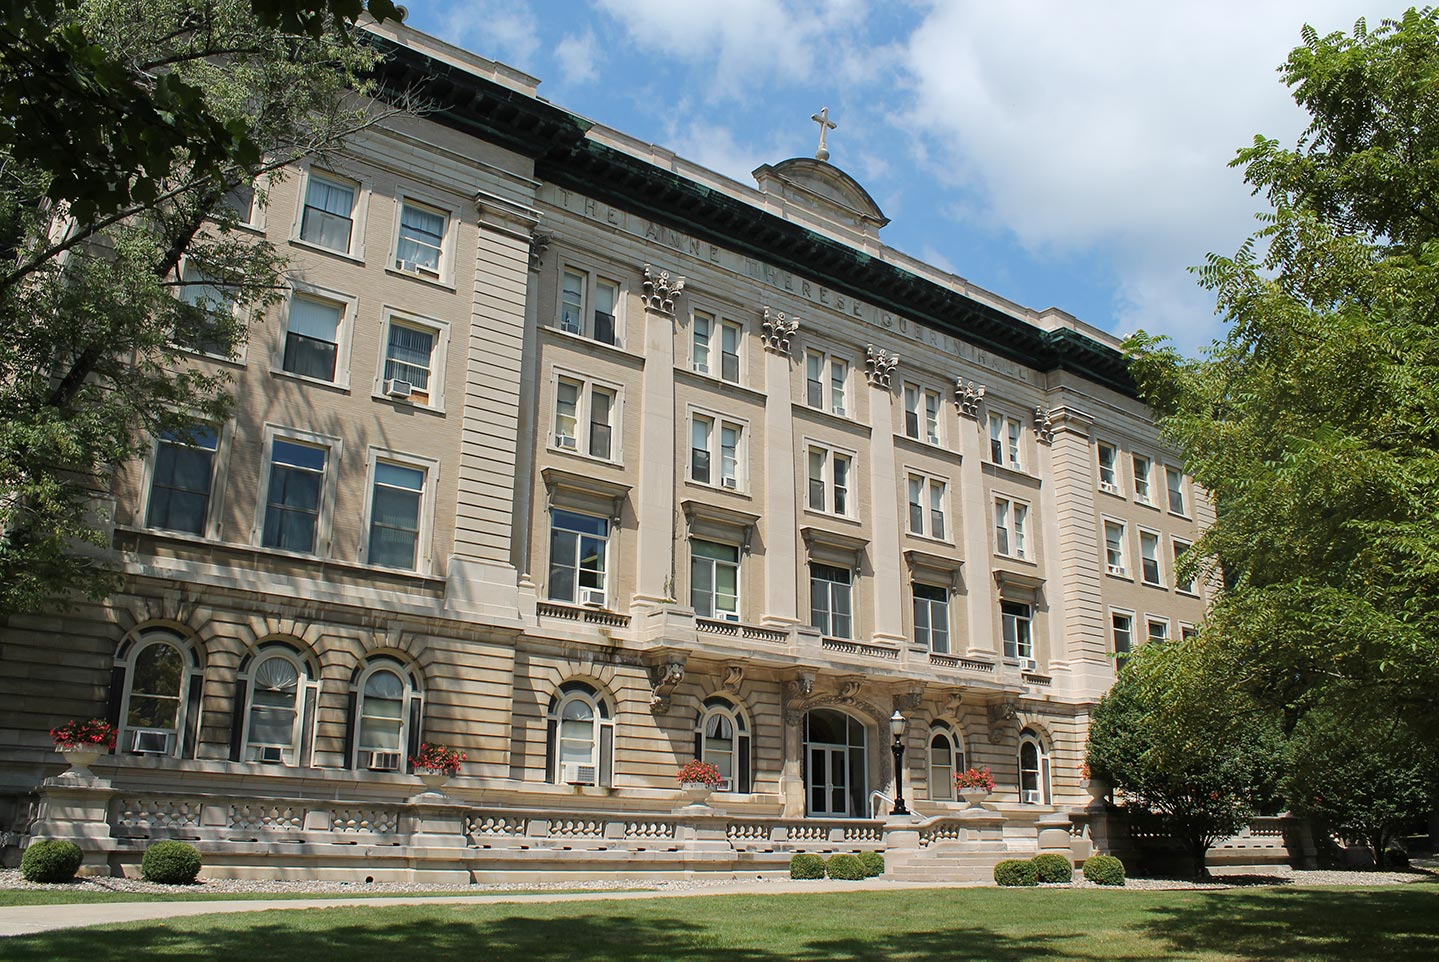 Exterior view of Guerin Hall